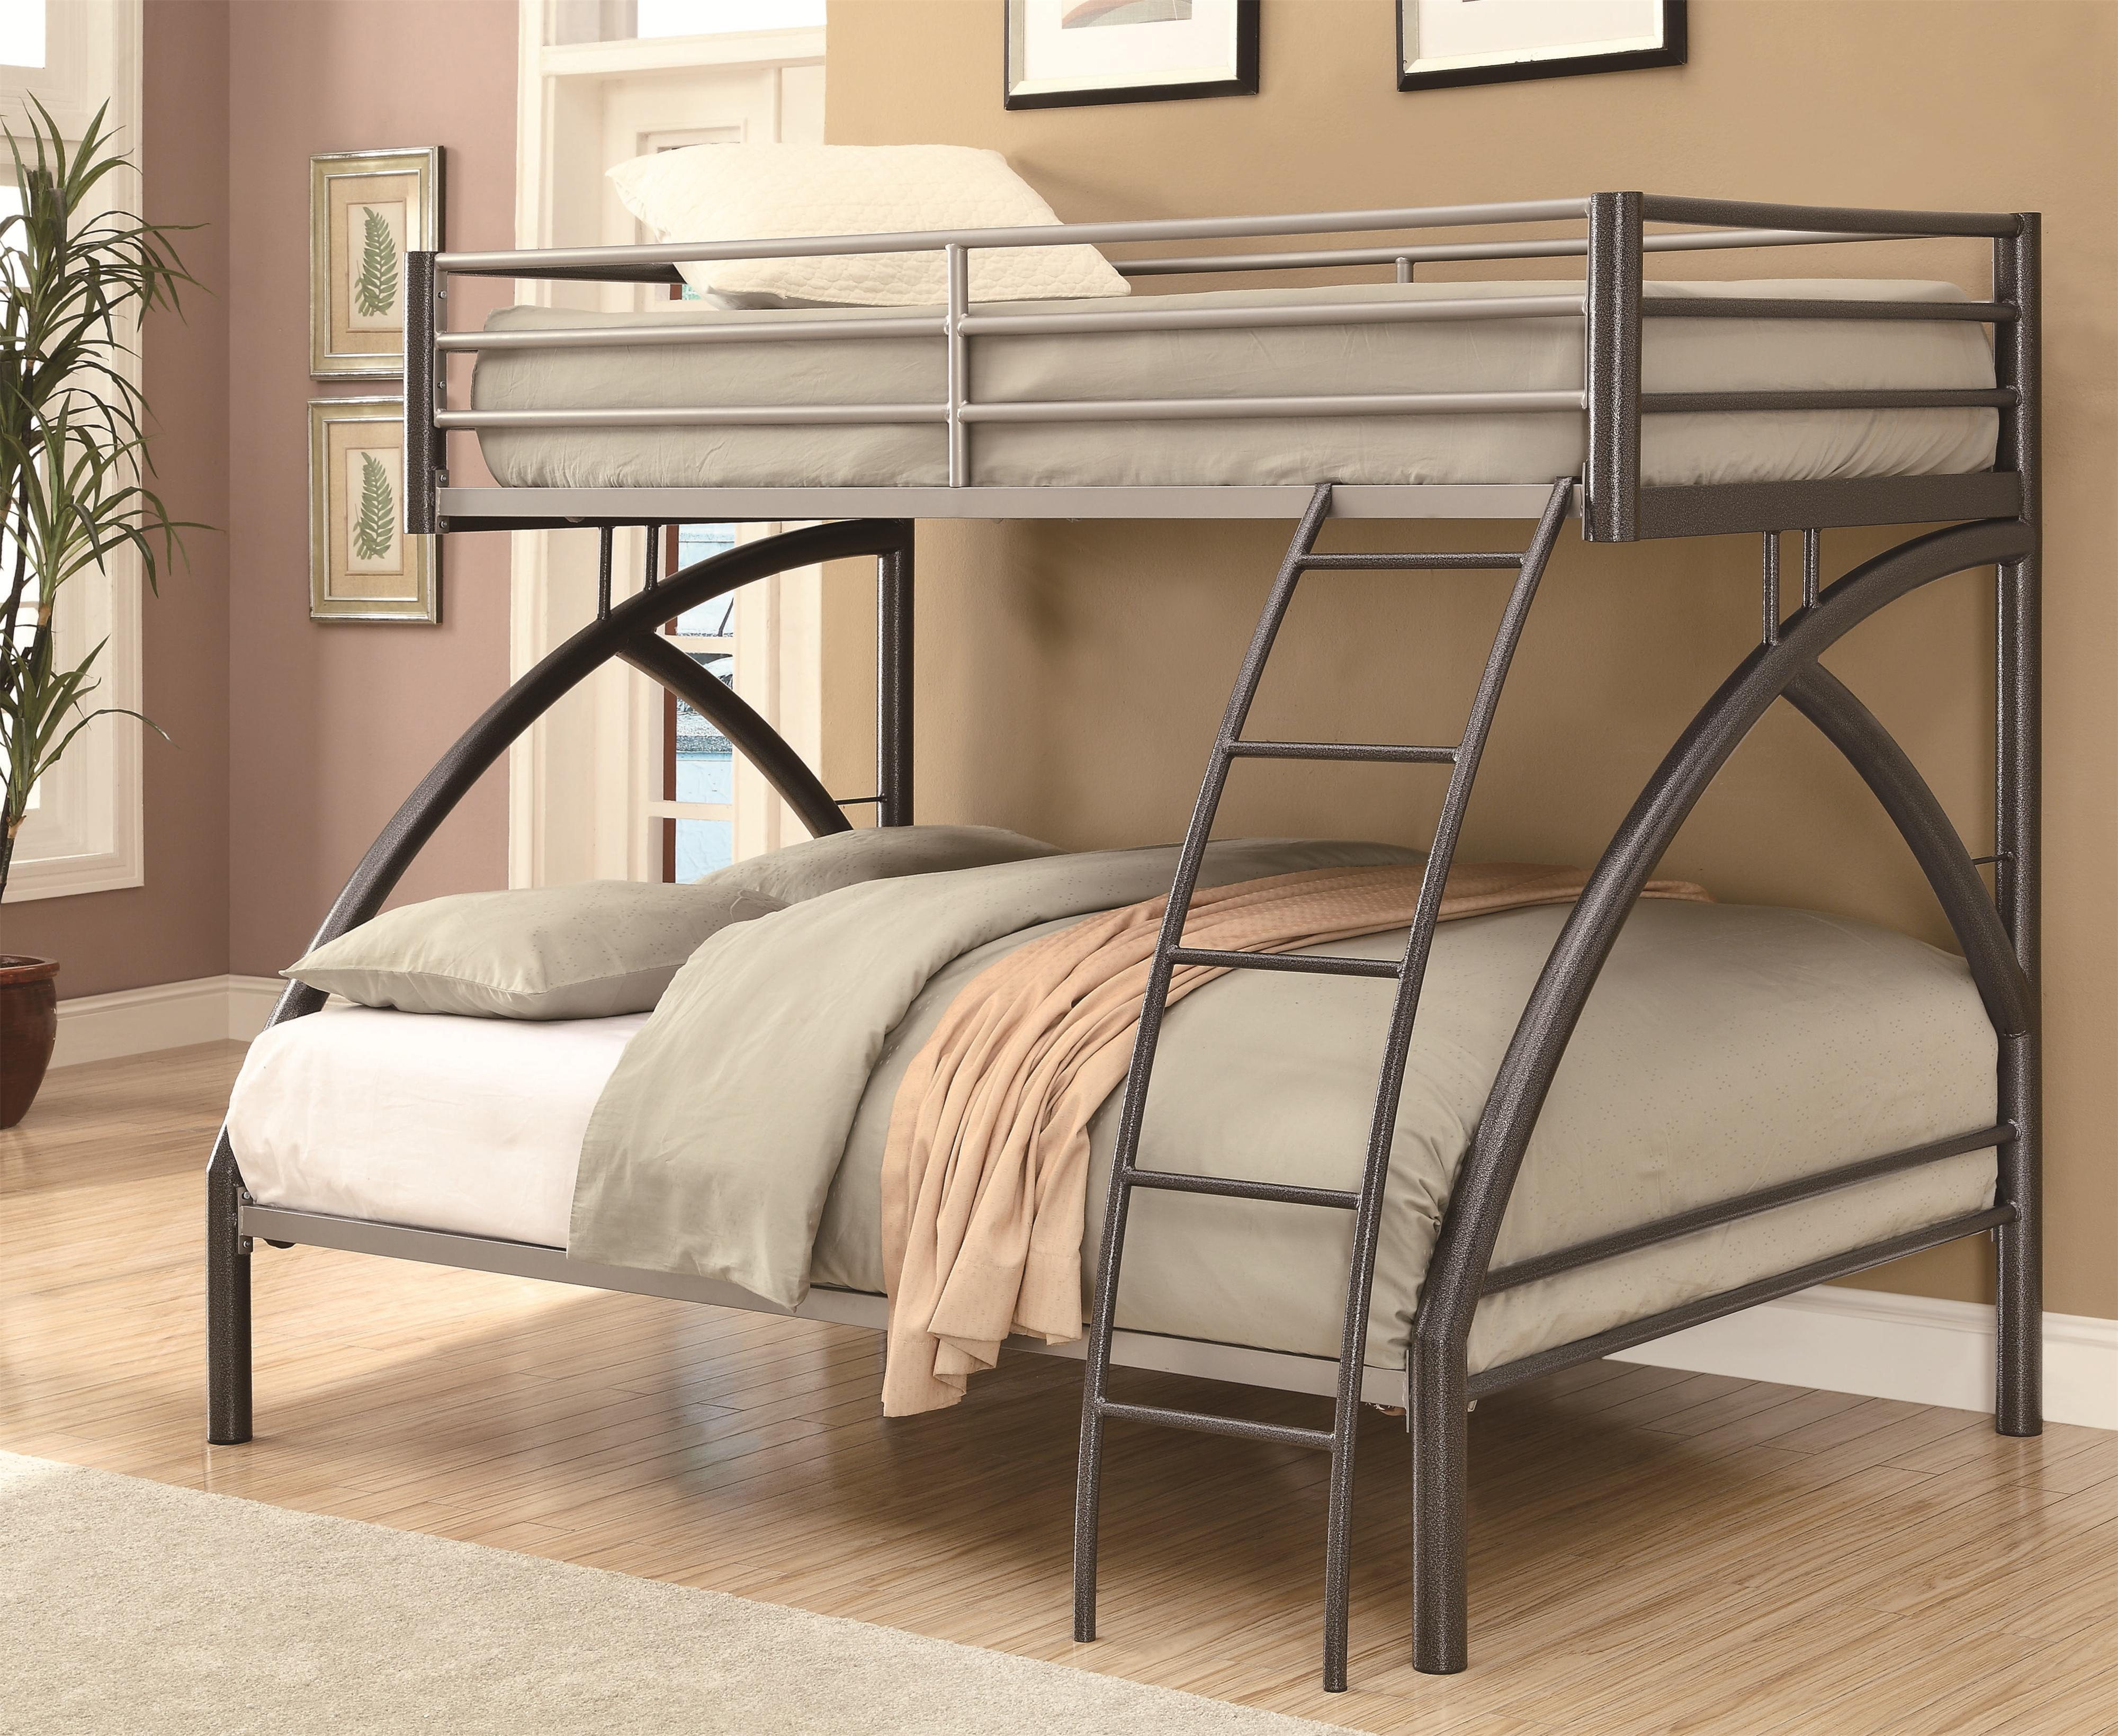 Bunks Twin/Full Bunk Bed by Coaster at Northeast Factory Direct